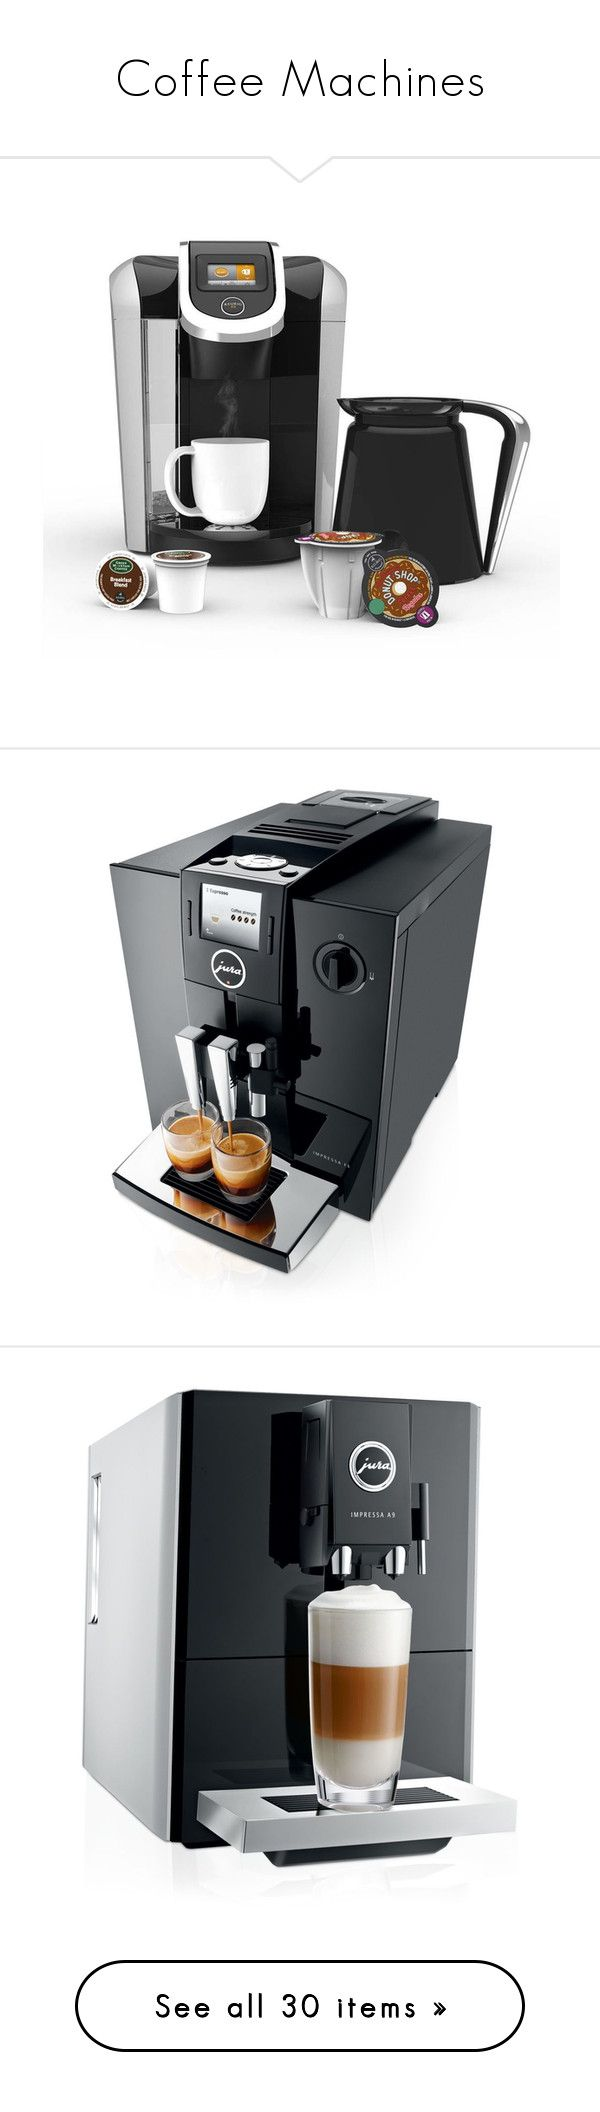 """""""Coffee Machines"""" by m2ri ❤ liked on Polyvore featuring home, kitchen & dining, keurig, small appliances, piano black, jura espresso machine, jura coffee machine, jura, jura espresso maker and black coffee maker"""